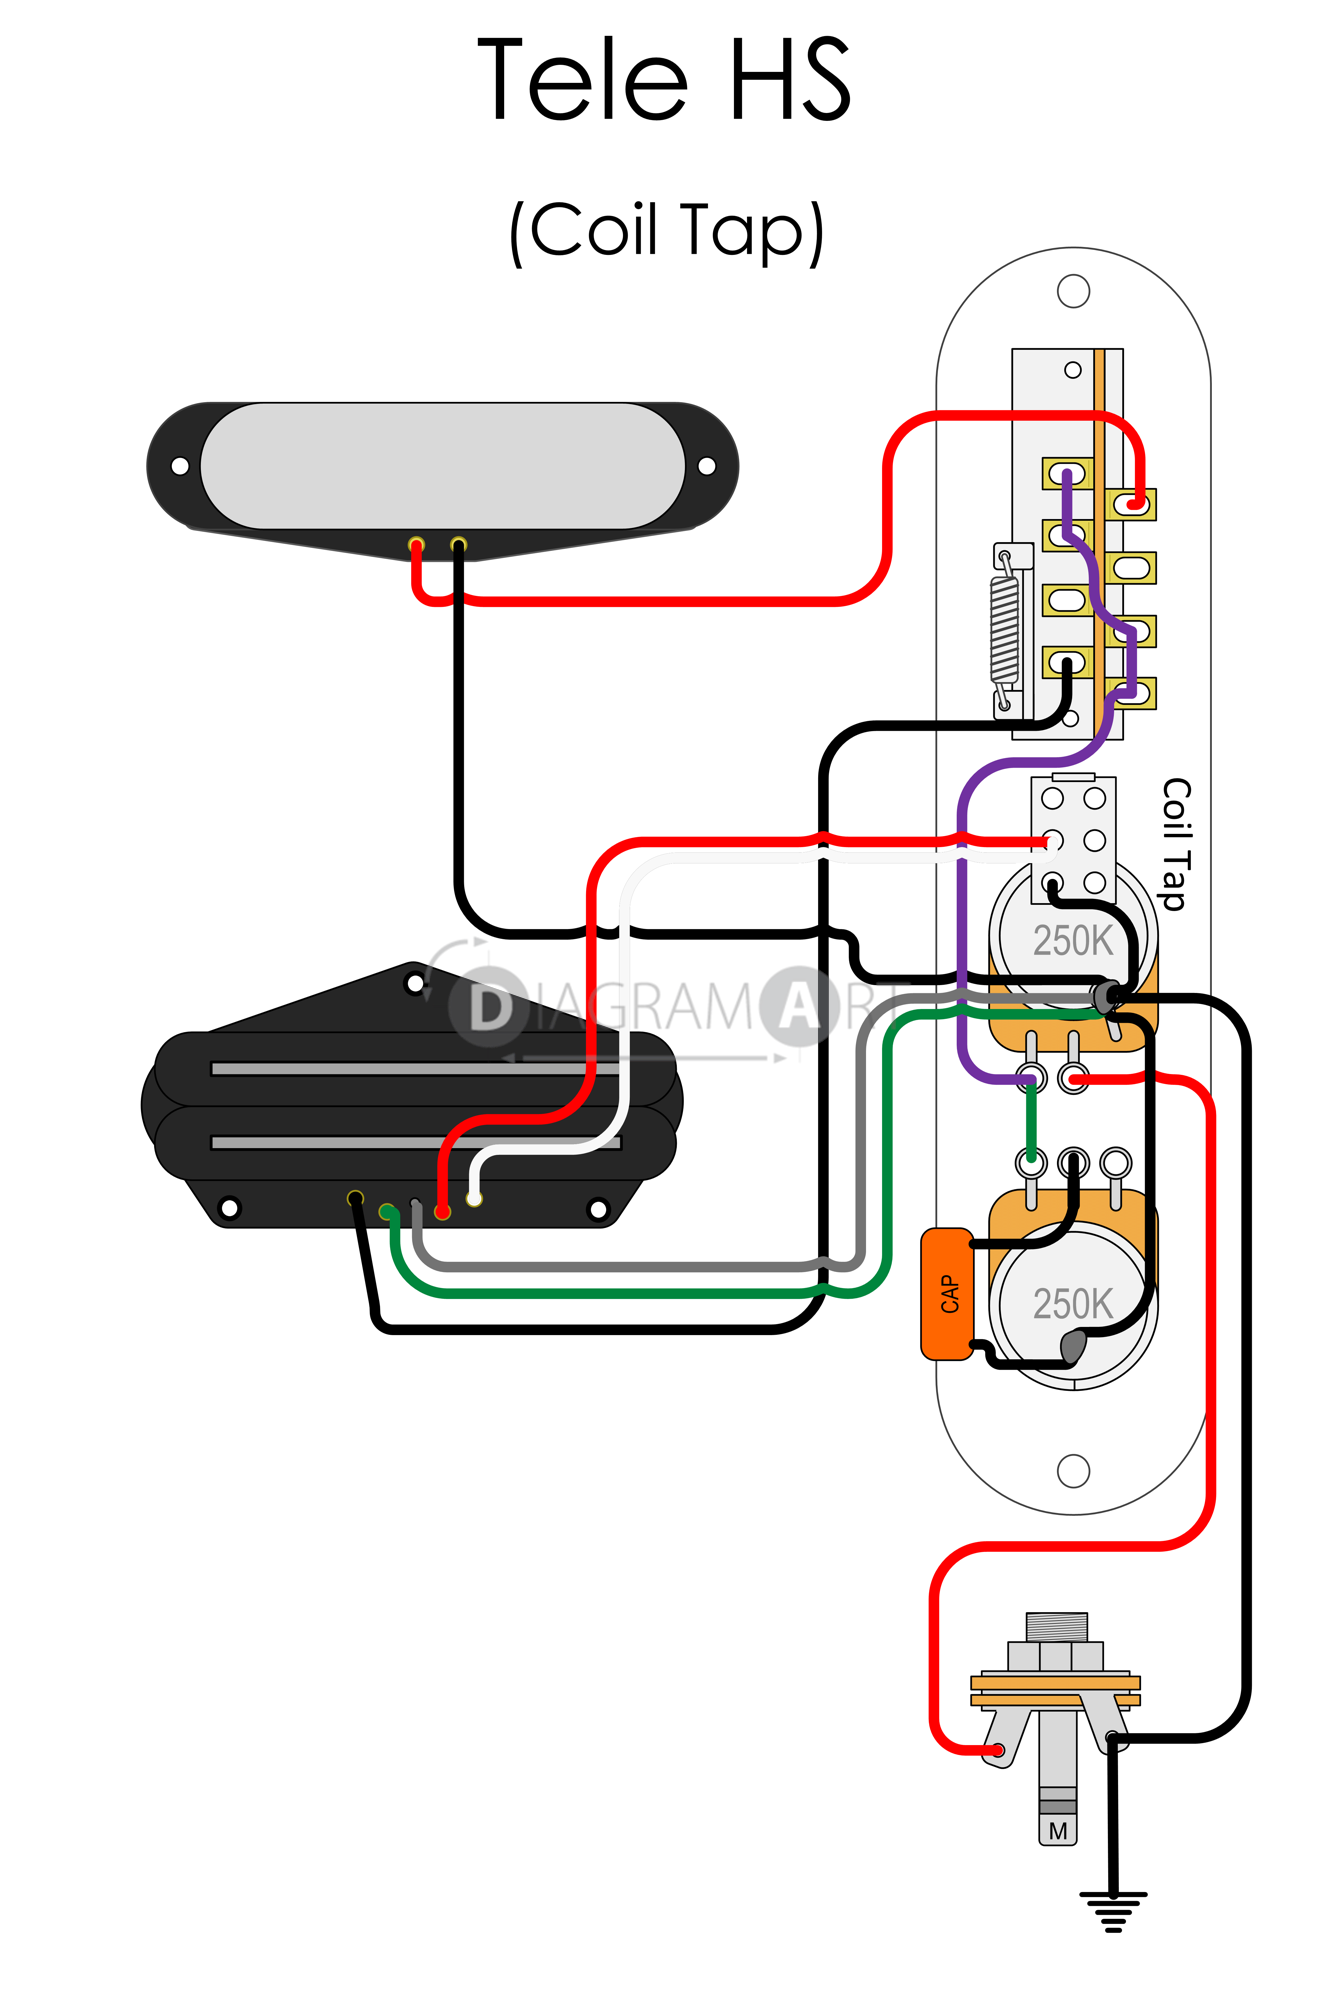 Guitar Wiring Diagram Hs Nice Place To Get Humbucker Pickup Coil Tap Electric Tele Circuit Rh Diagramart Com Diagrams 1 Push Pull